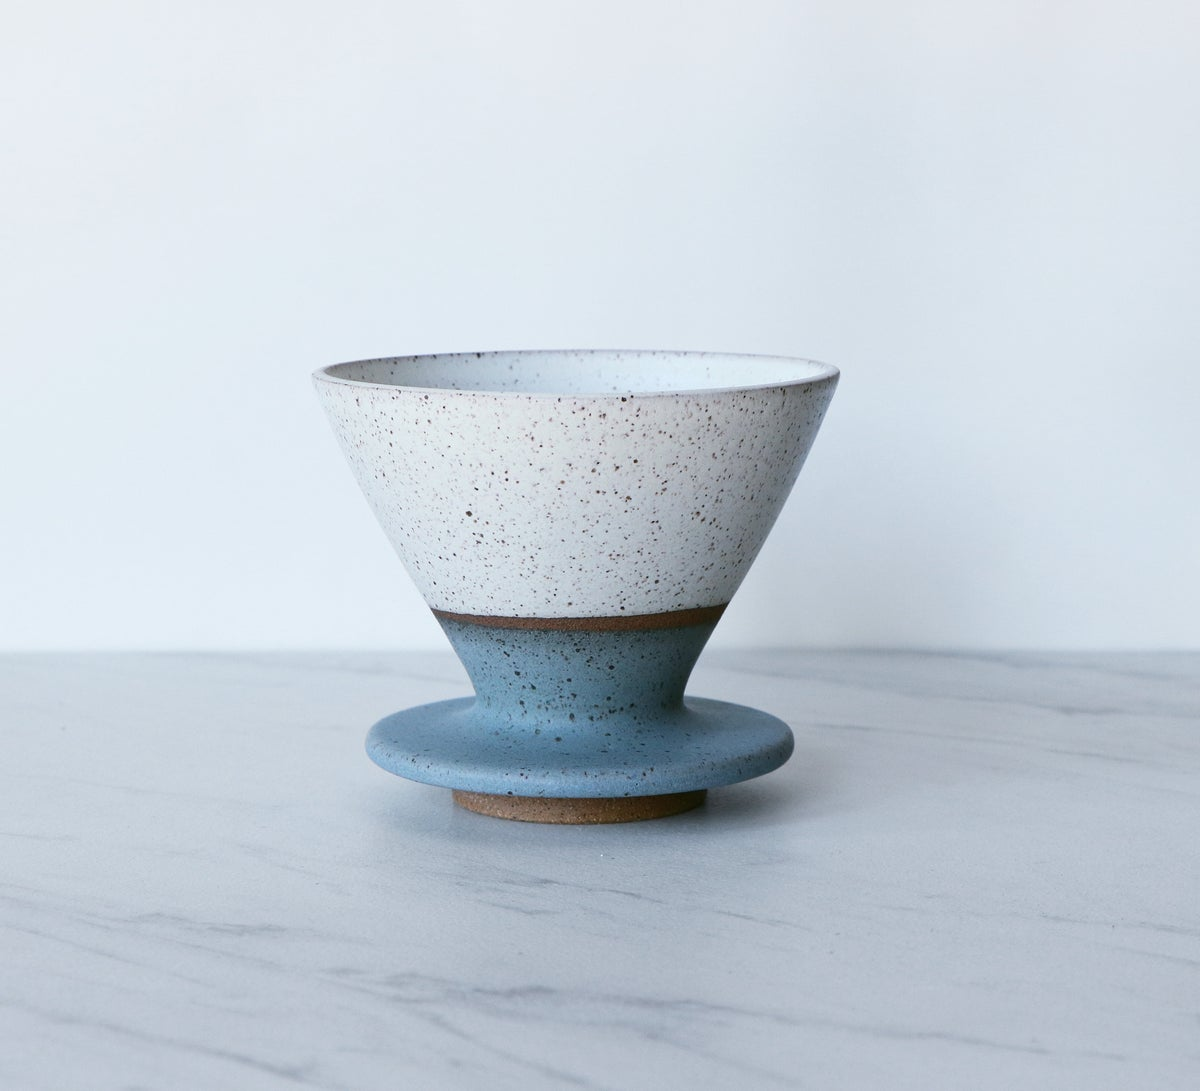 Image of Ceramic coffee pour over, speckled clay, glazed in cream + turquoise